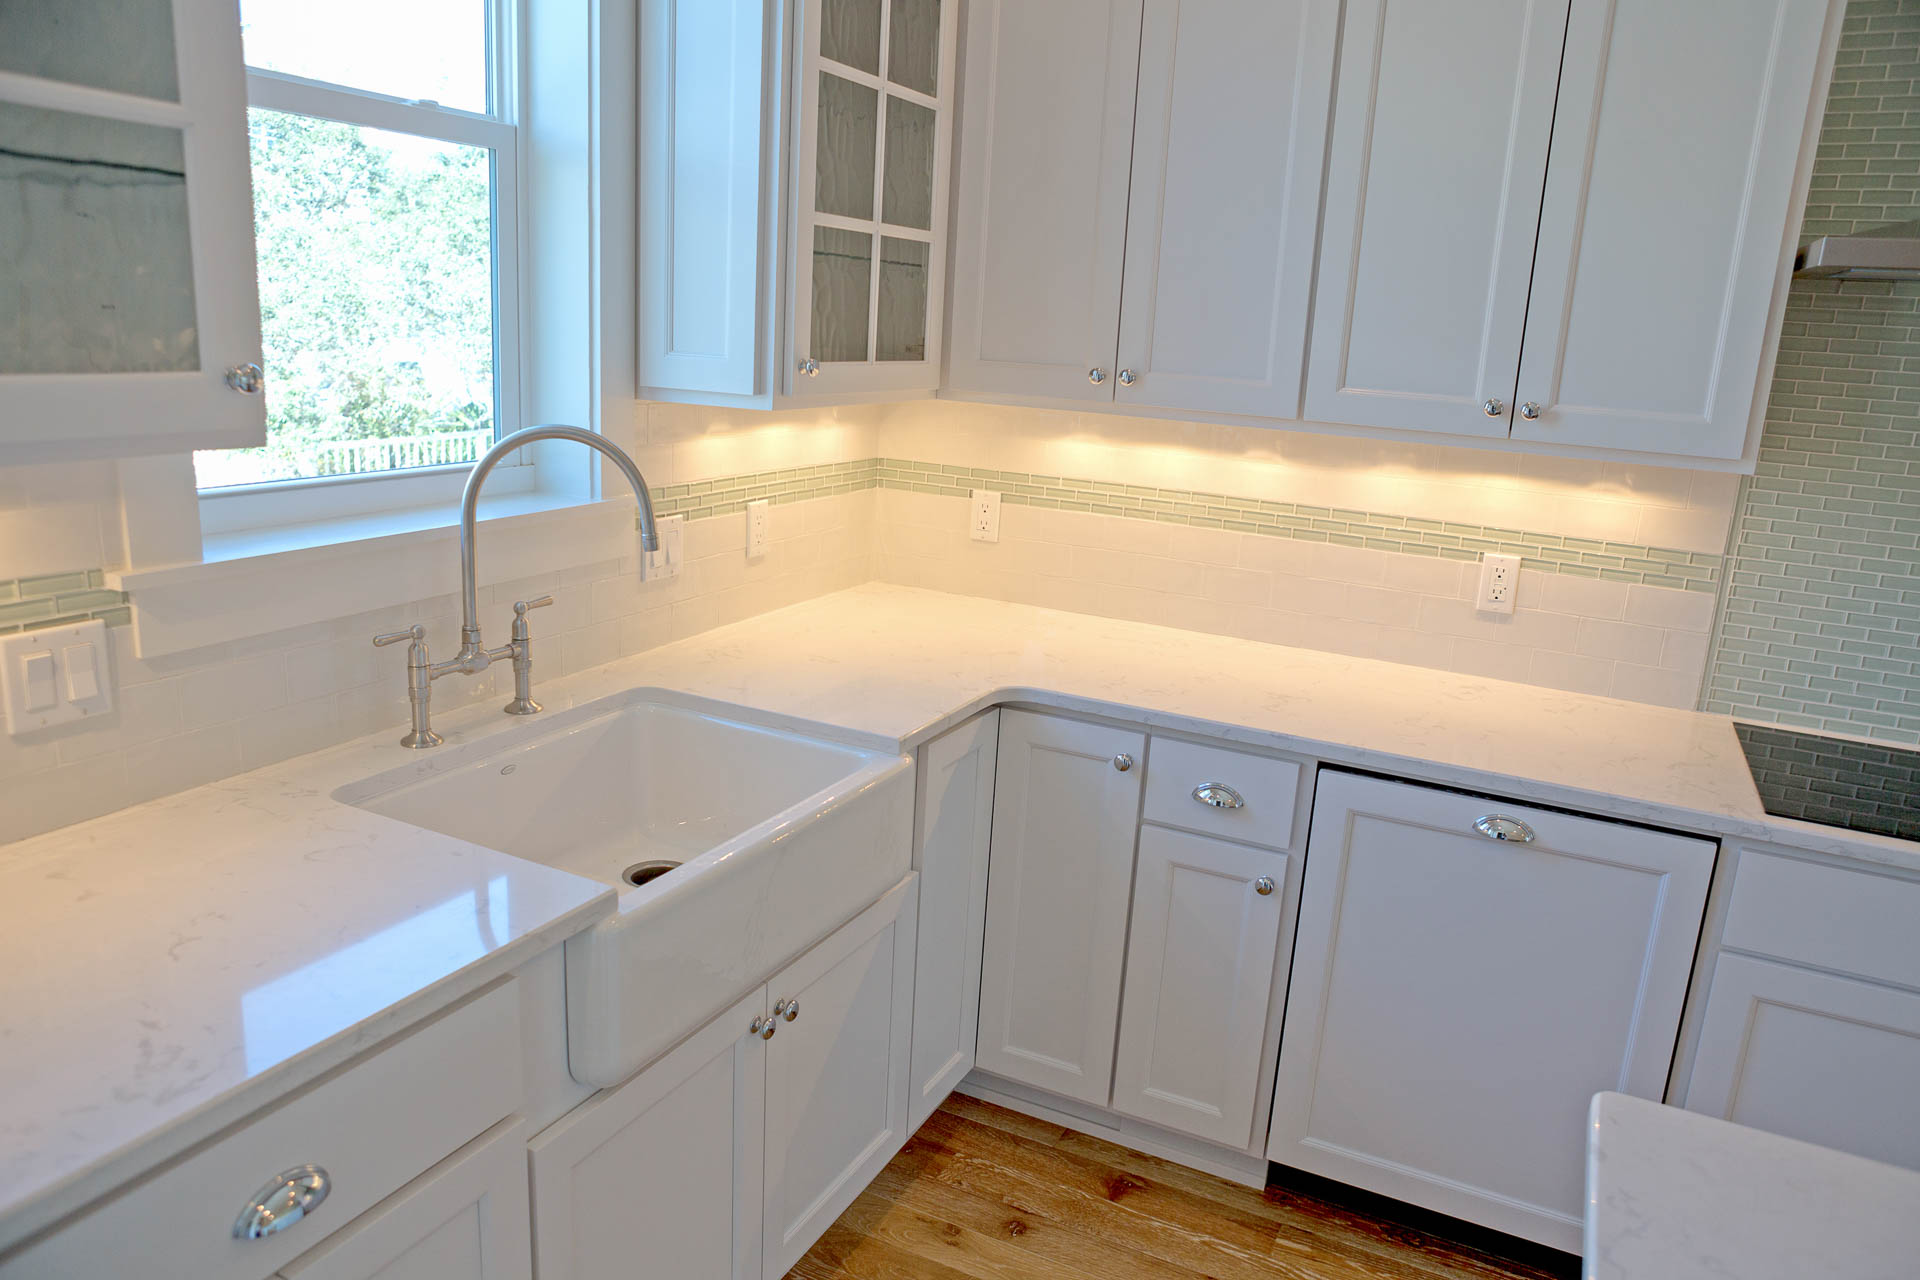 High end kictchen with white granite, farm house sink, and light green back splash inside new construction home in Old Florida Beach on 30A.